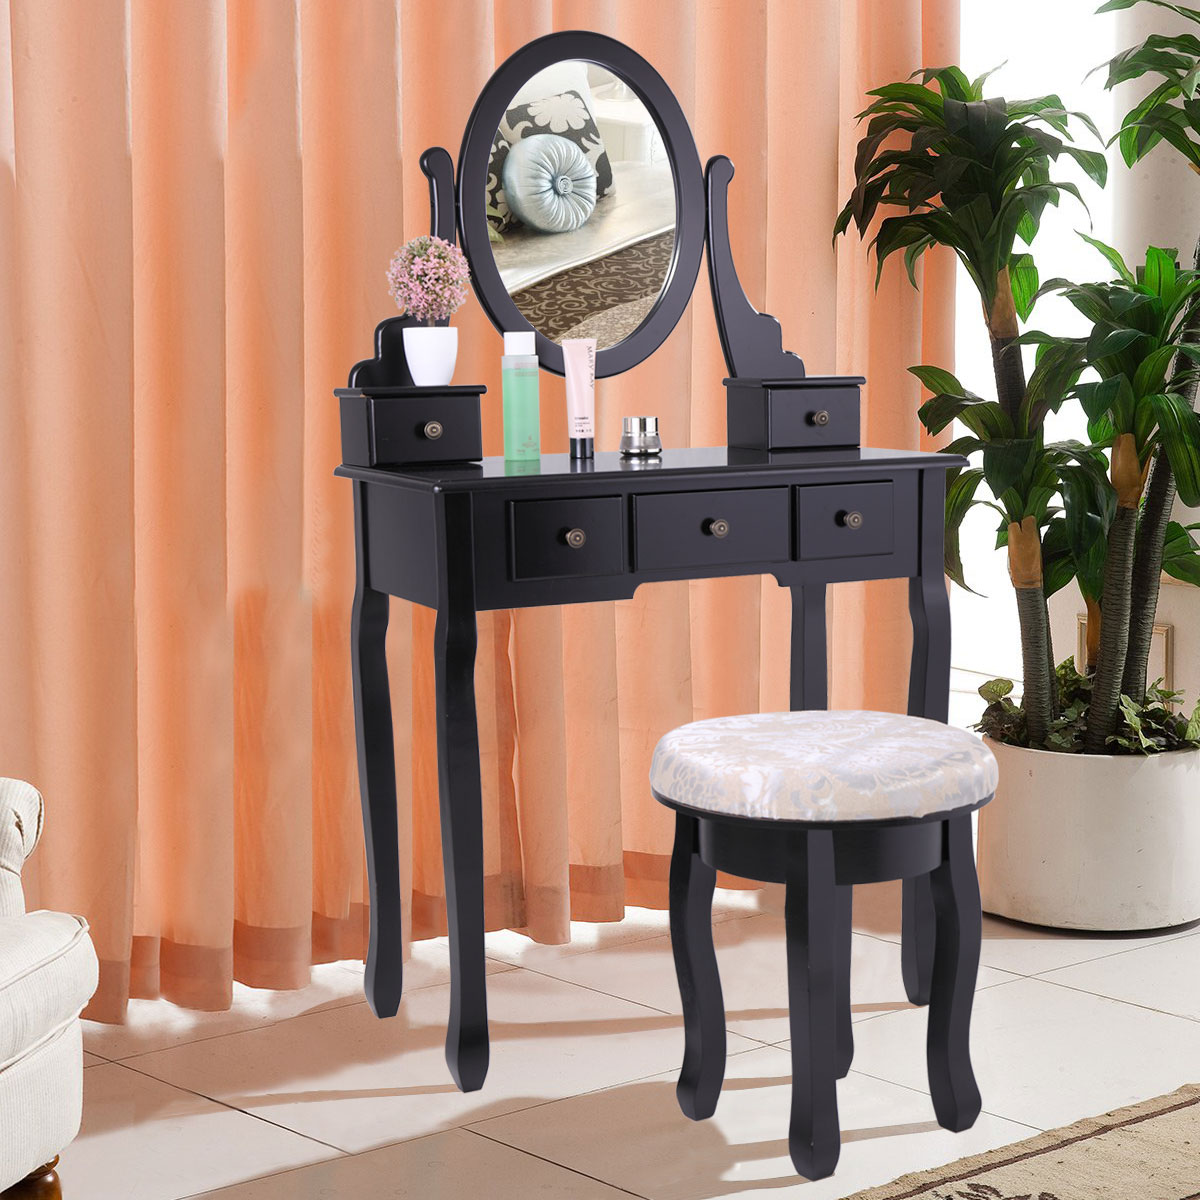 Jaxpety Wooden Vanity Table Set Makeup Dressing Table with Stool and Oval Mirror, Black